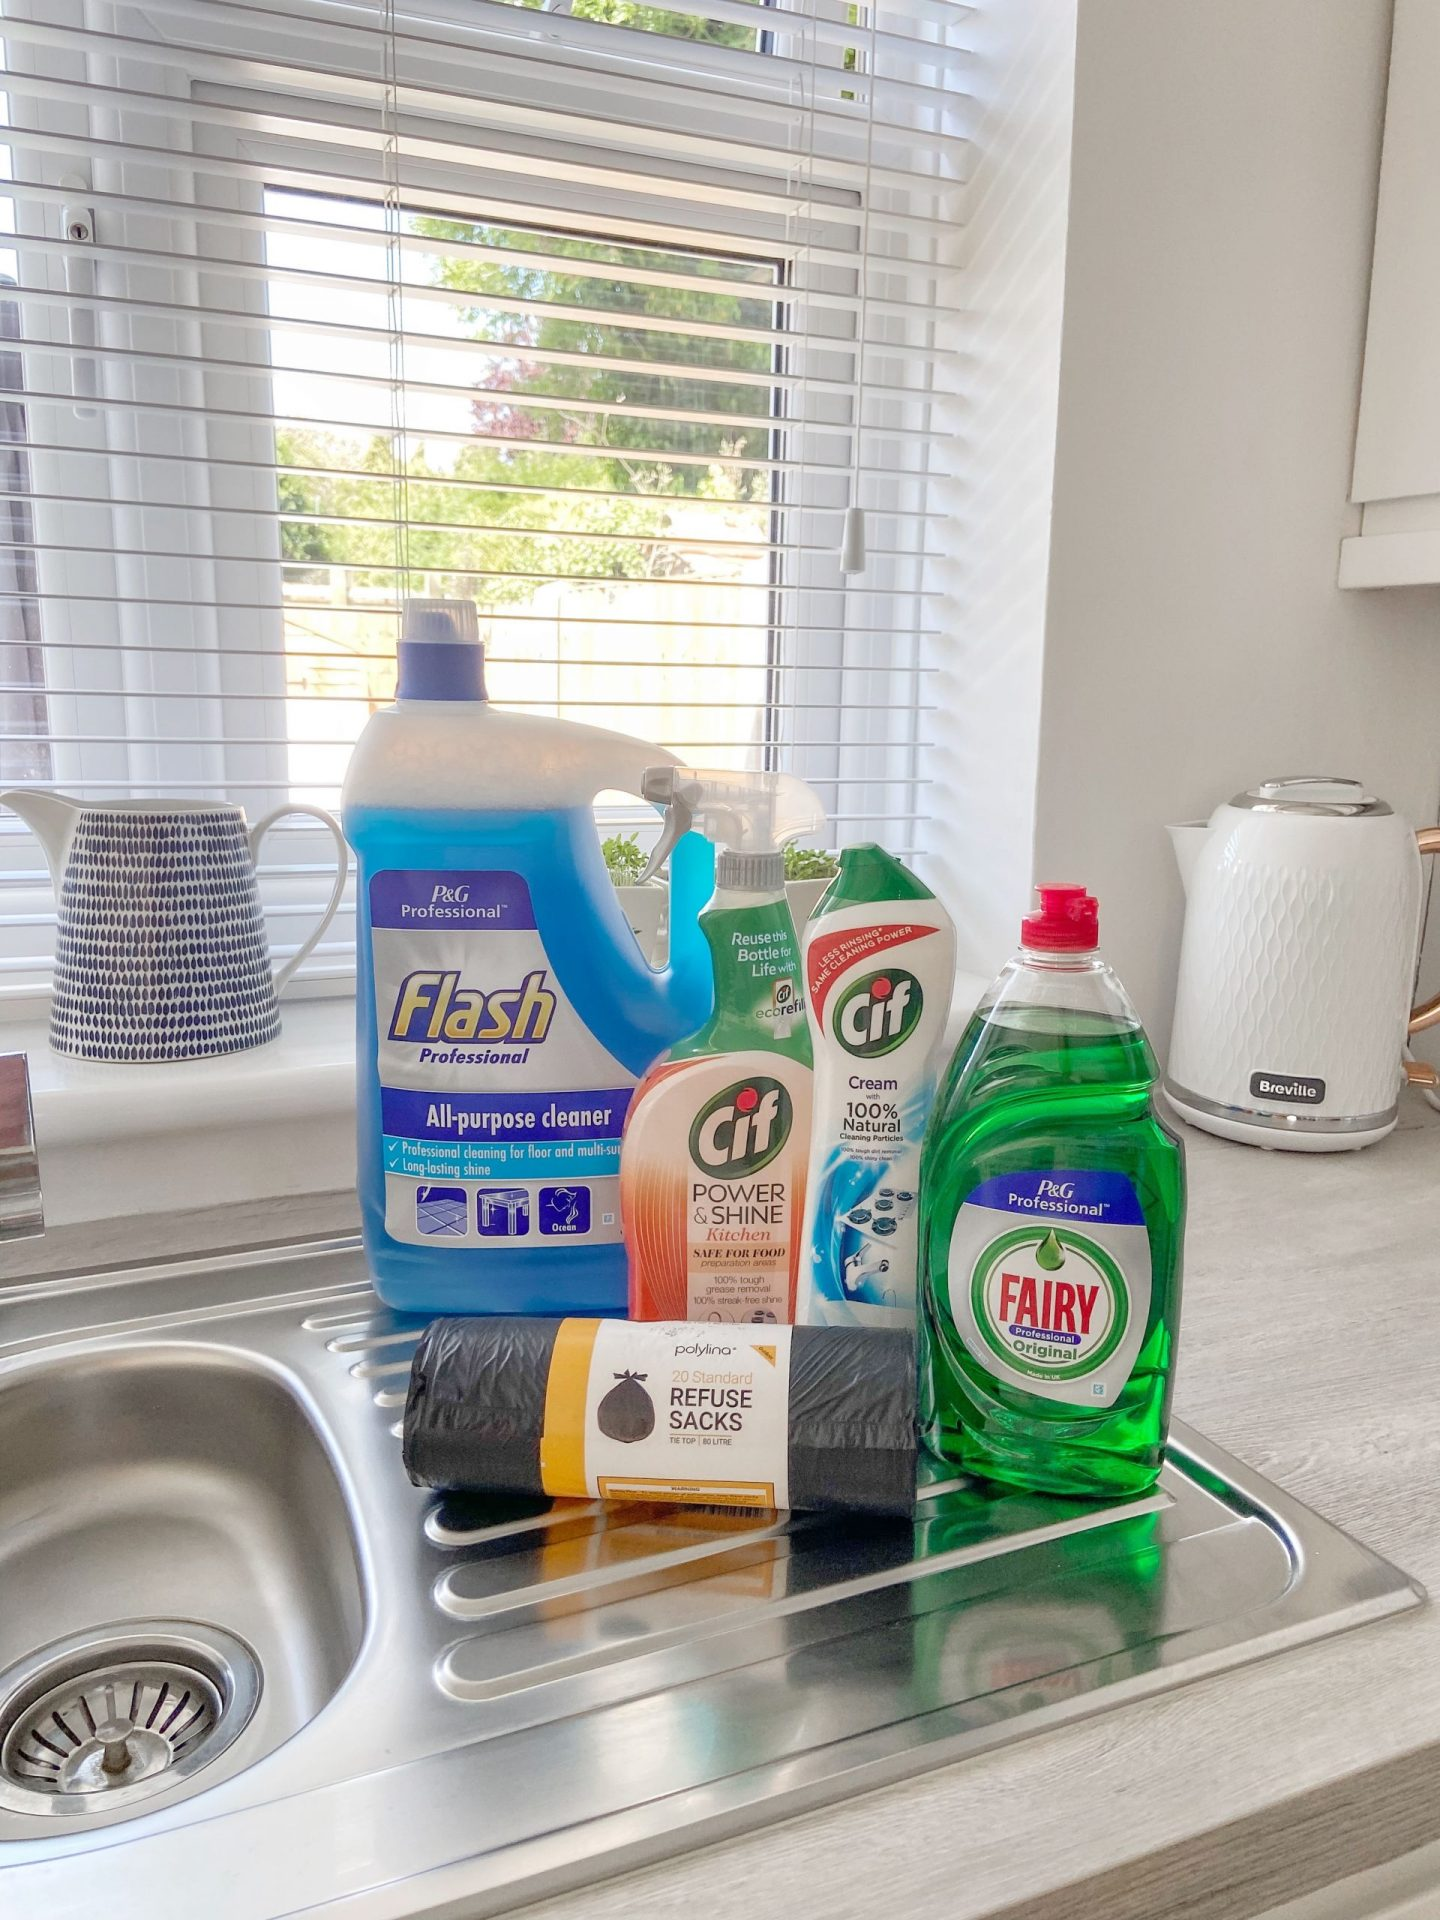 Cleaning Products for the kitchen